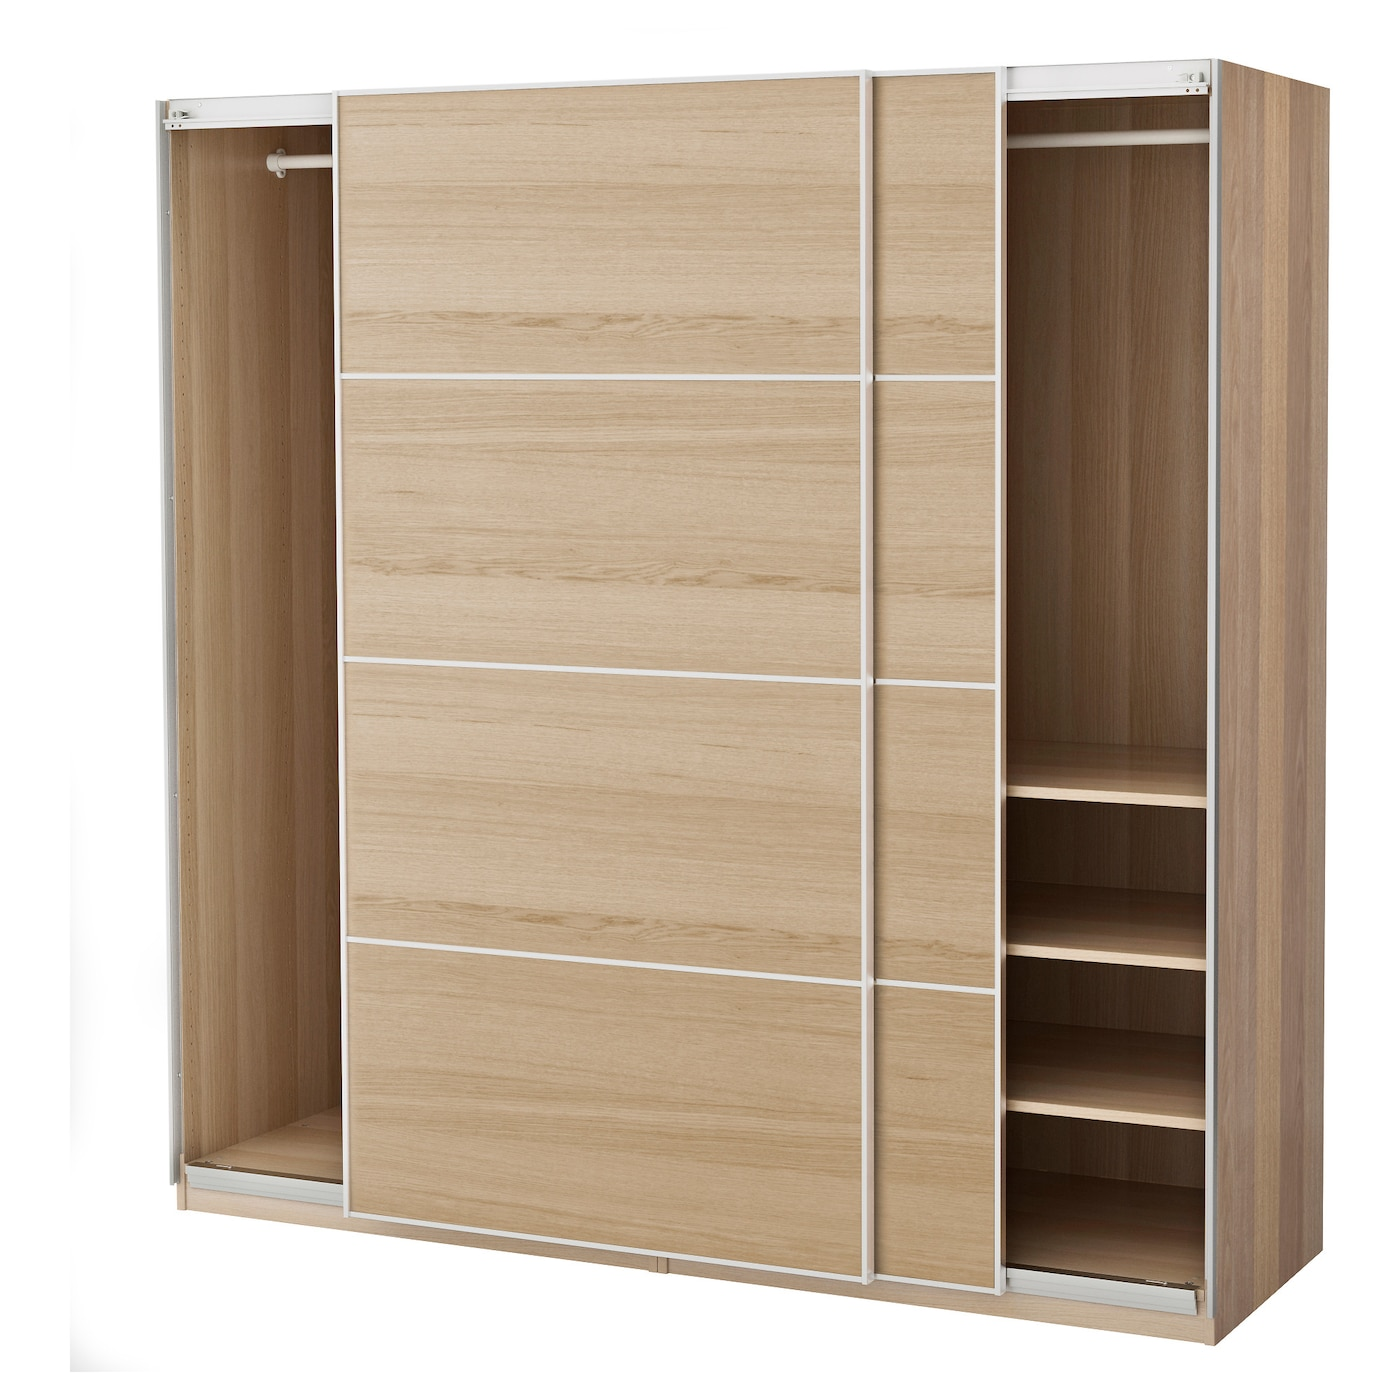 pax wardrobe white stained oak effect ilseng white stained. Black Bedroom Furniture Sets. Home Design Ideas